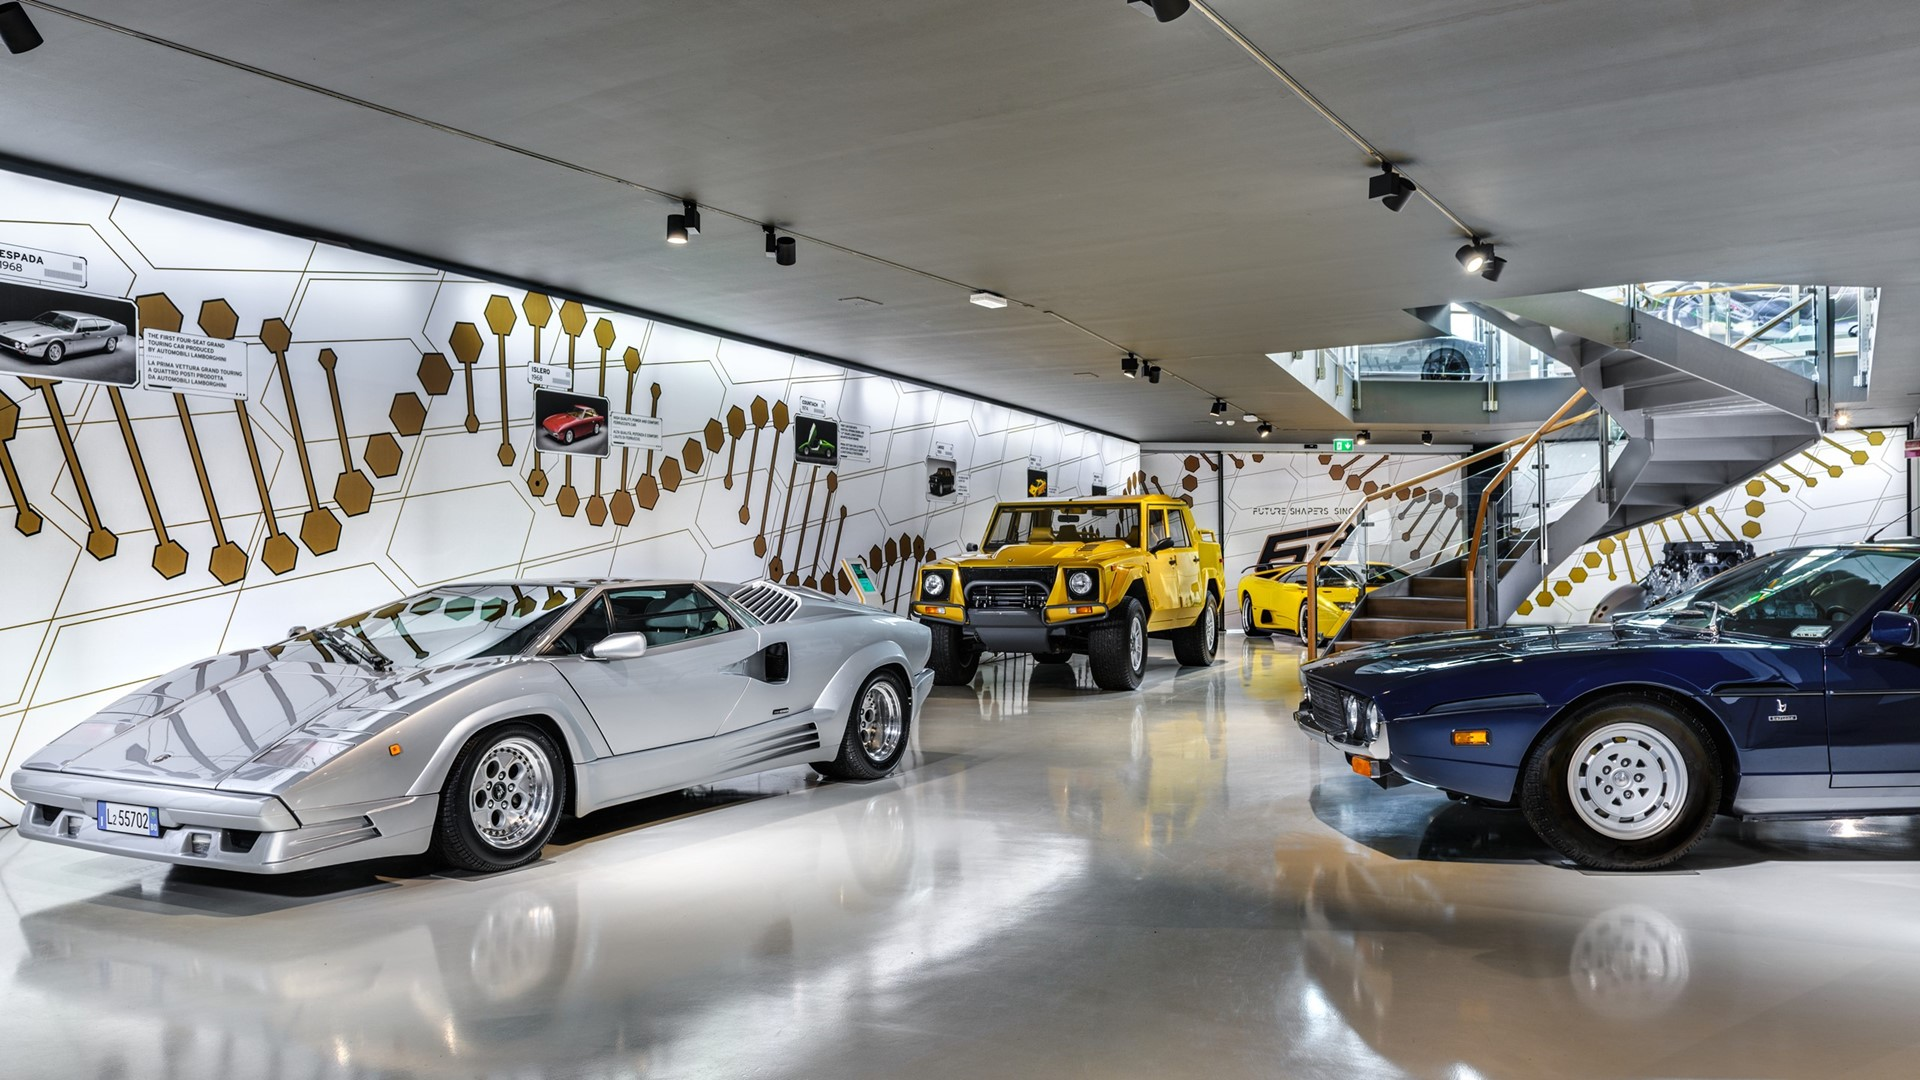 The Lamborghini Museum reopens its doors to the public The new Sián Roadster on display until 12 July - Image 3